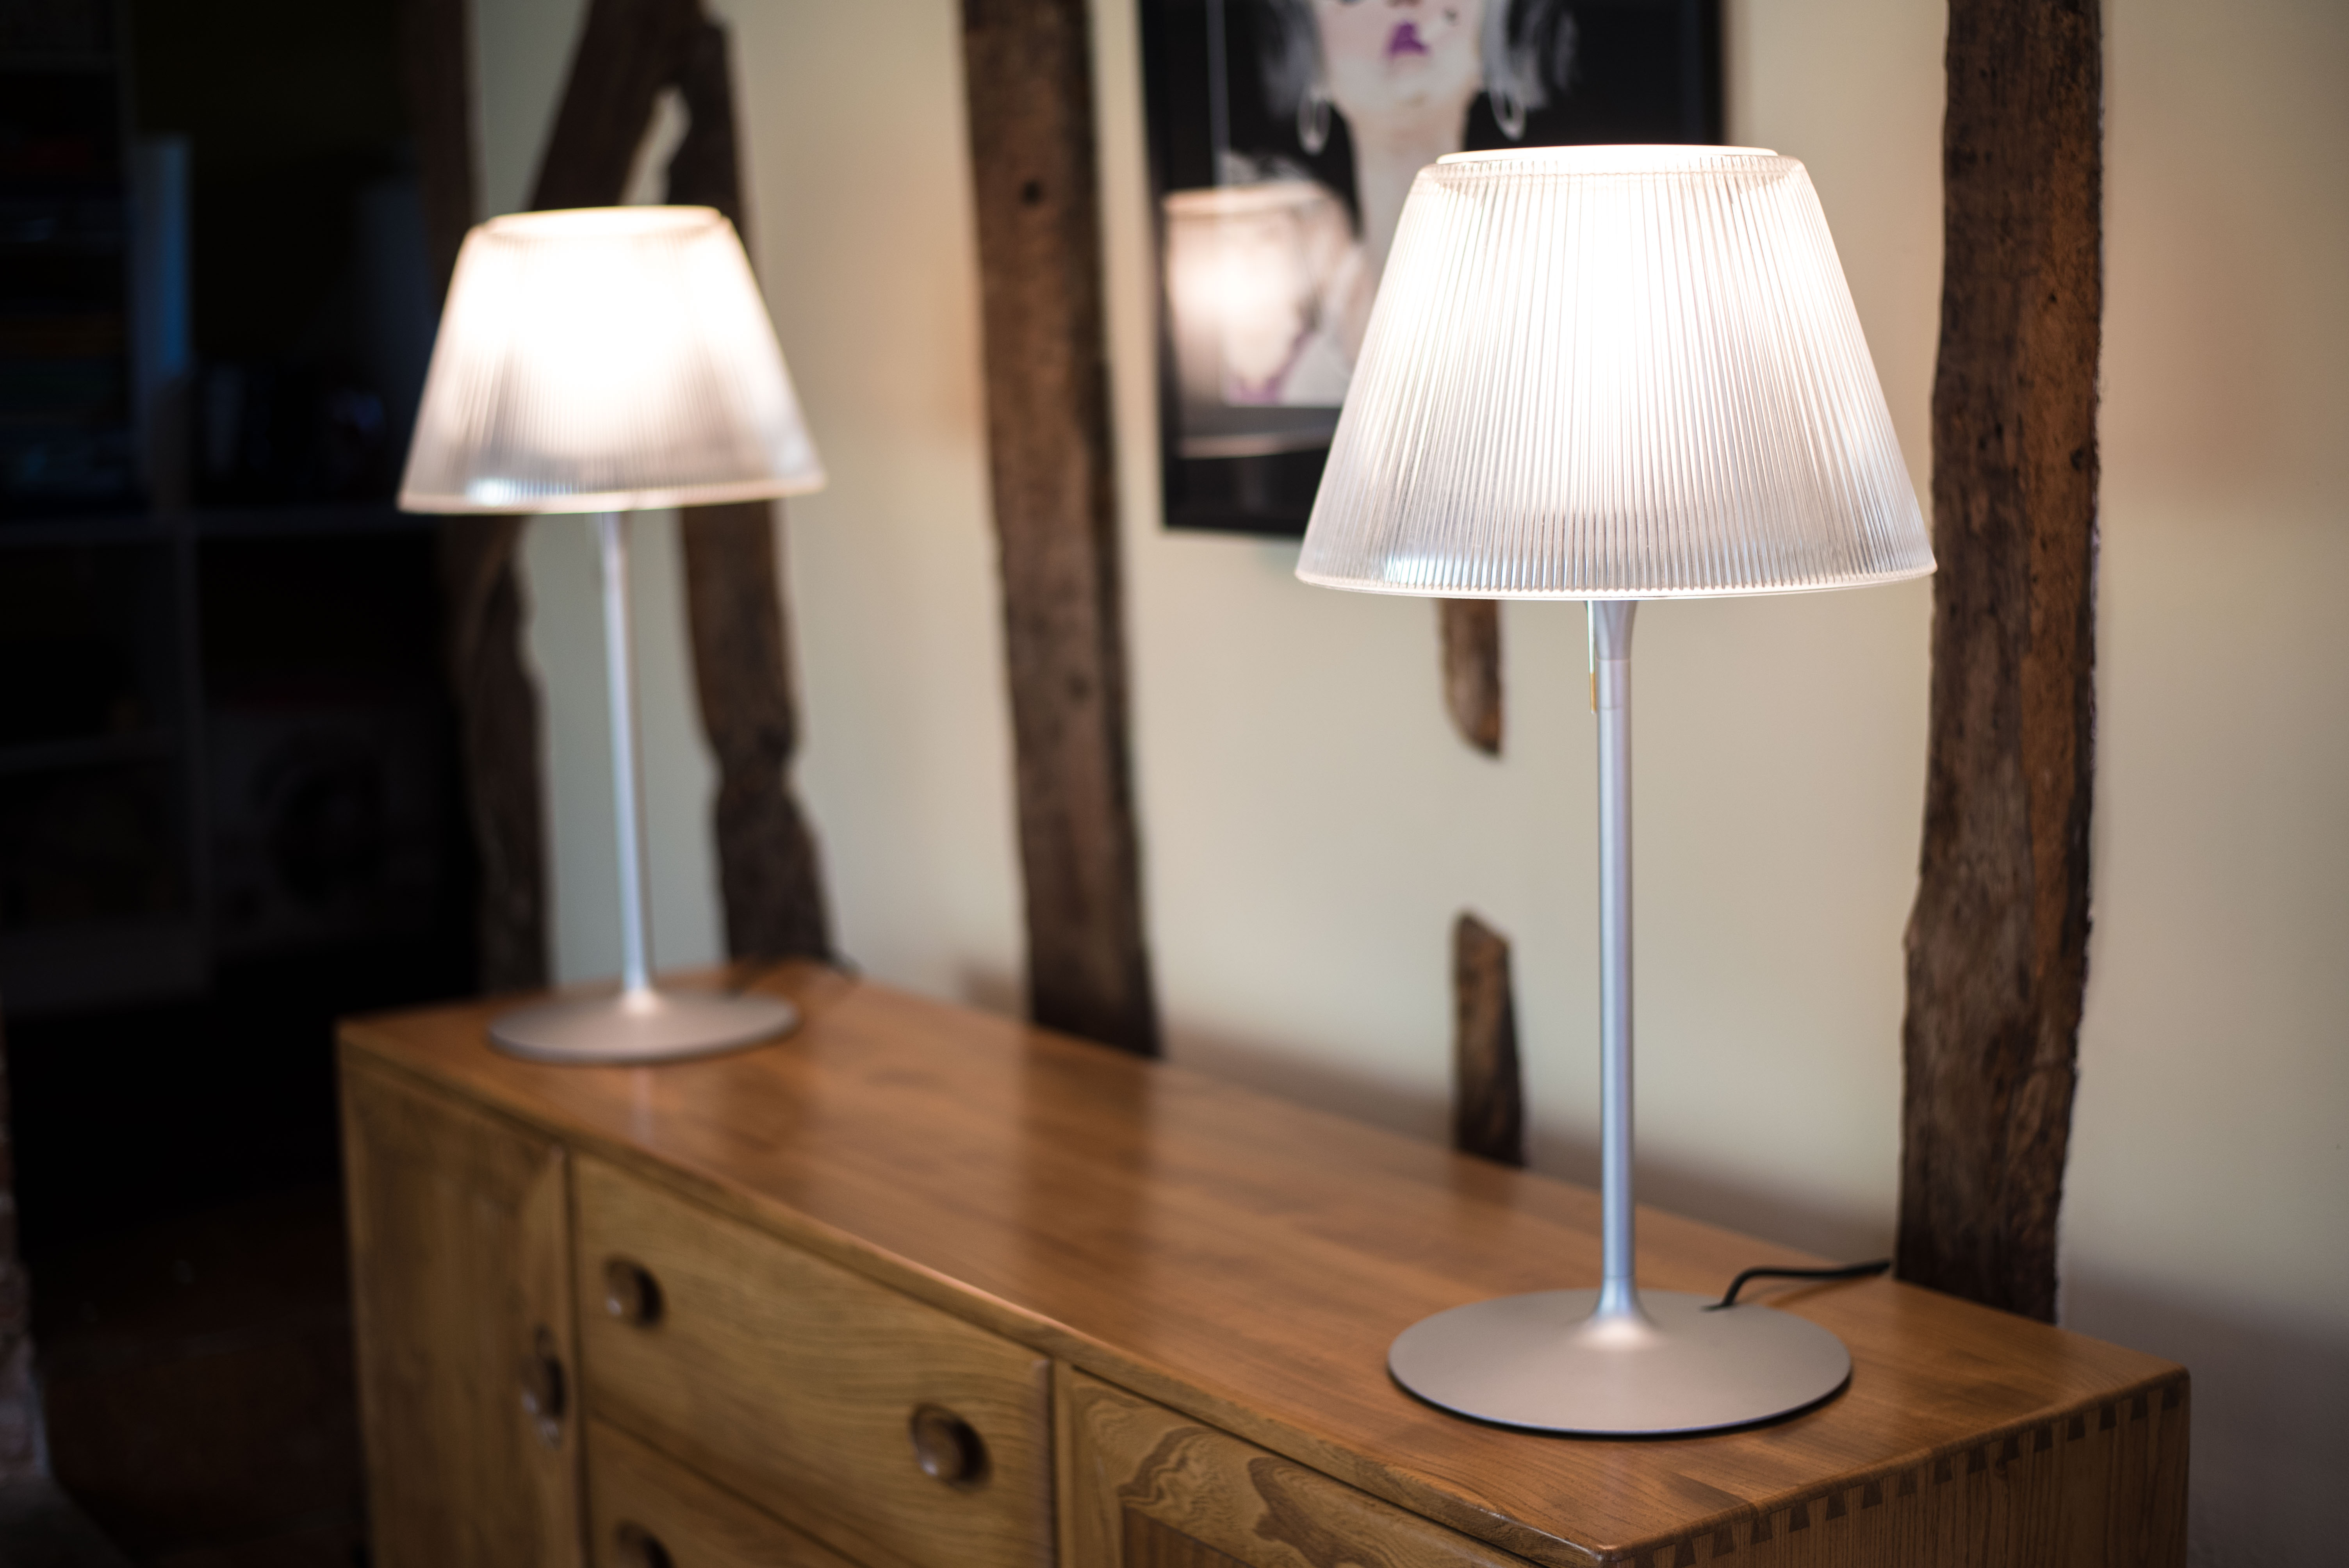 Pair of Philippe Starck Glass Table Lamps for Flos 'Romeo Moon T1' 7